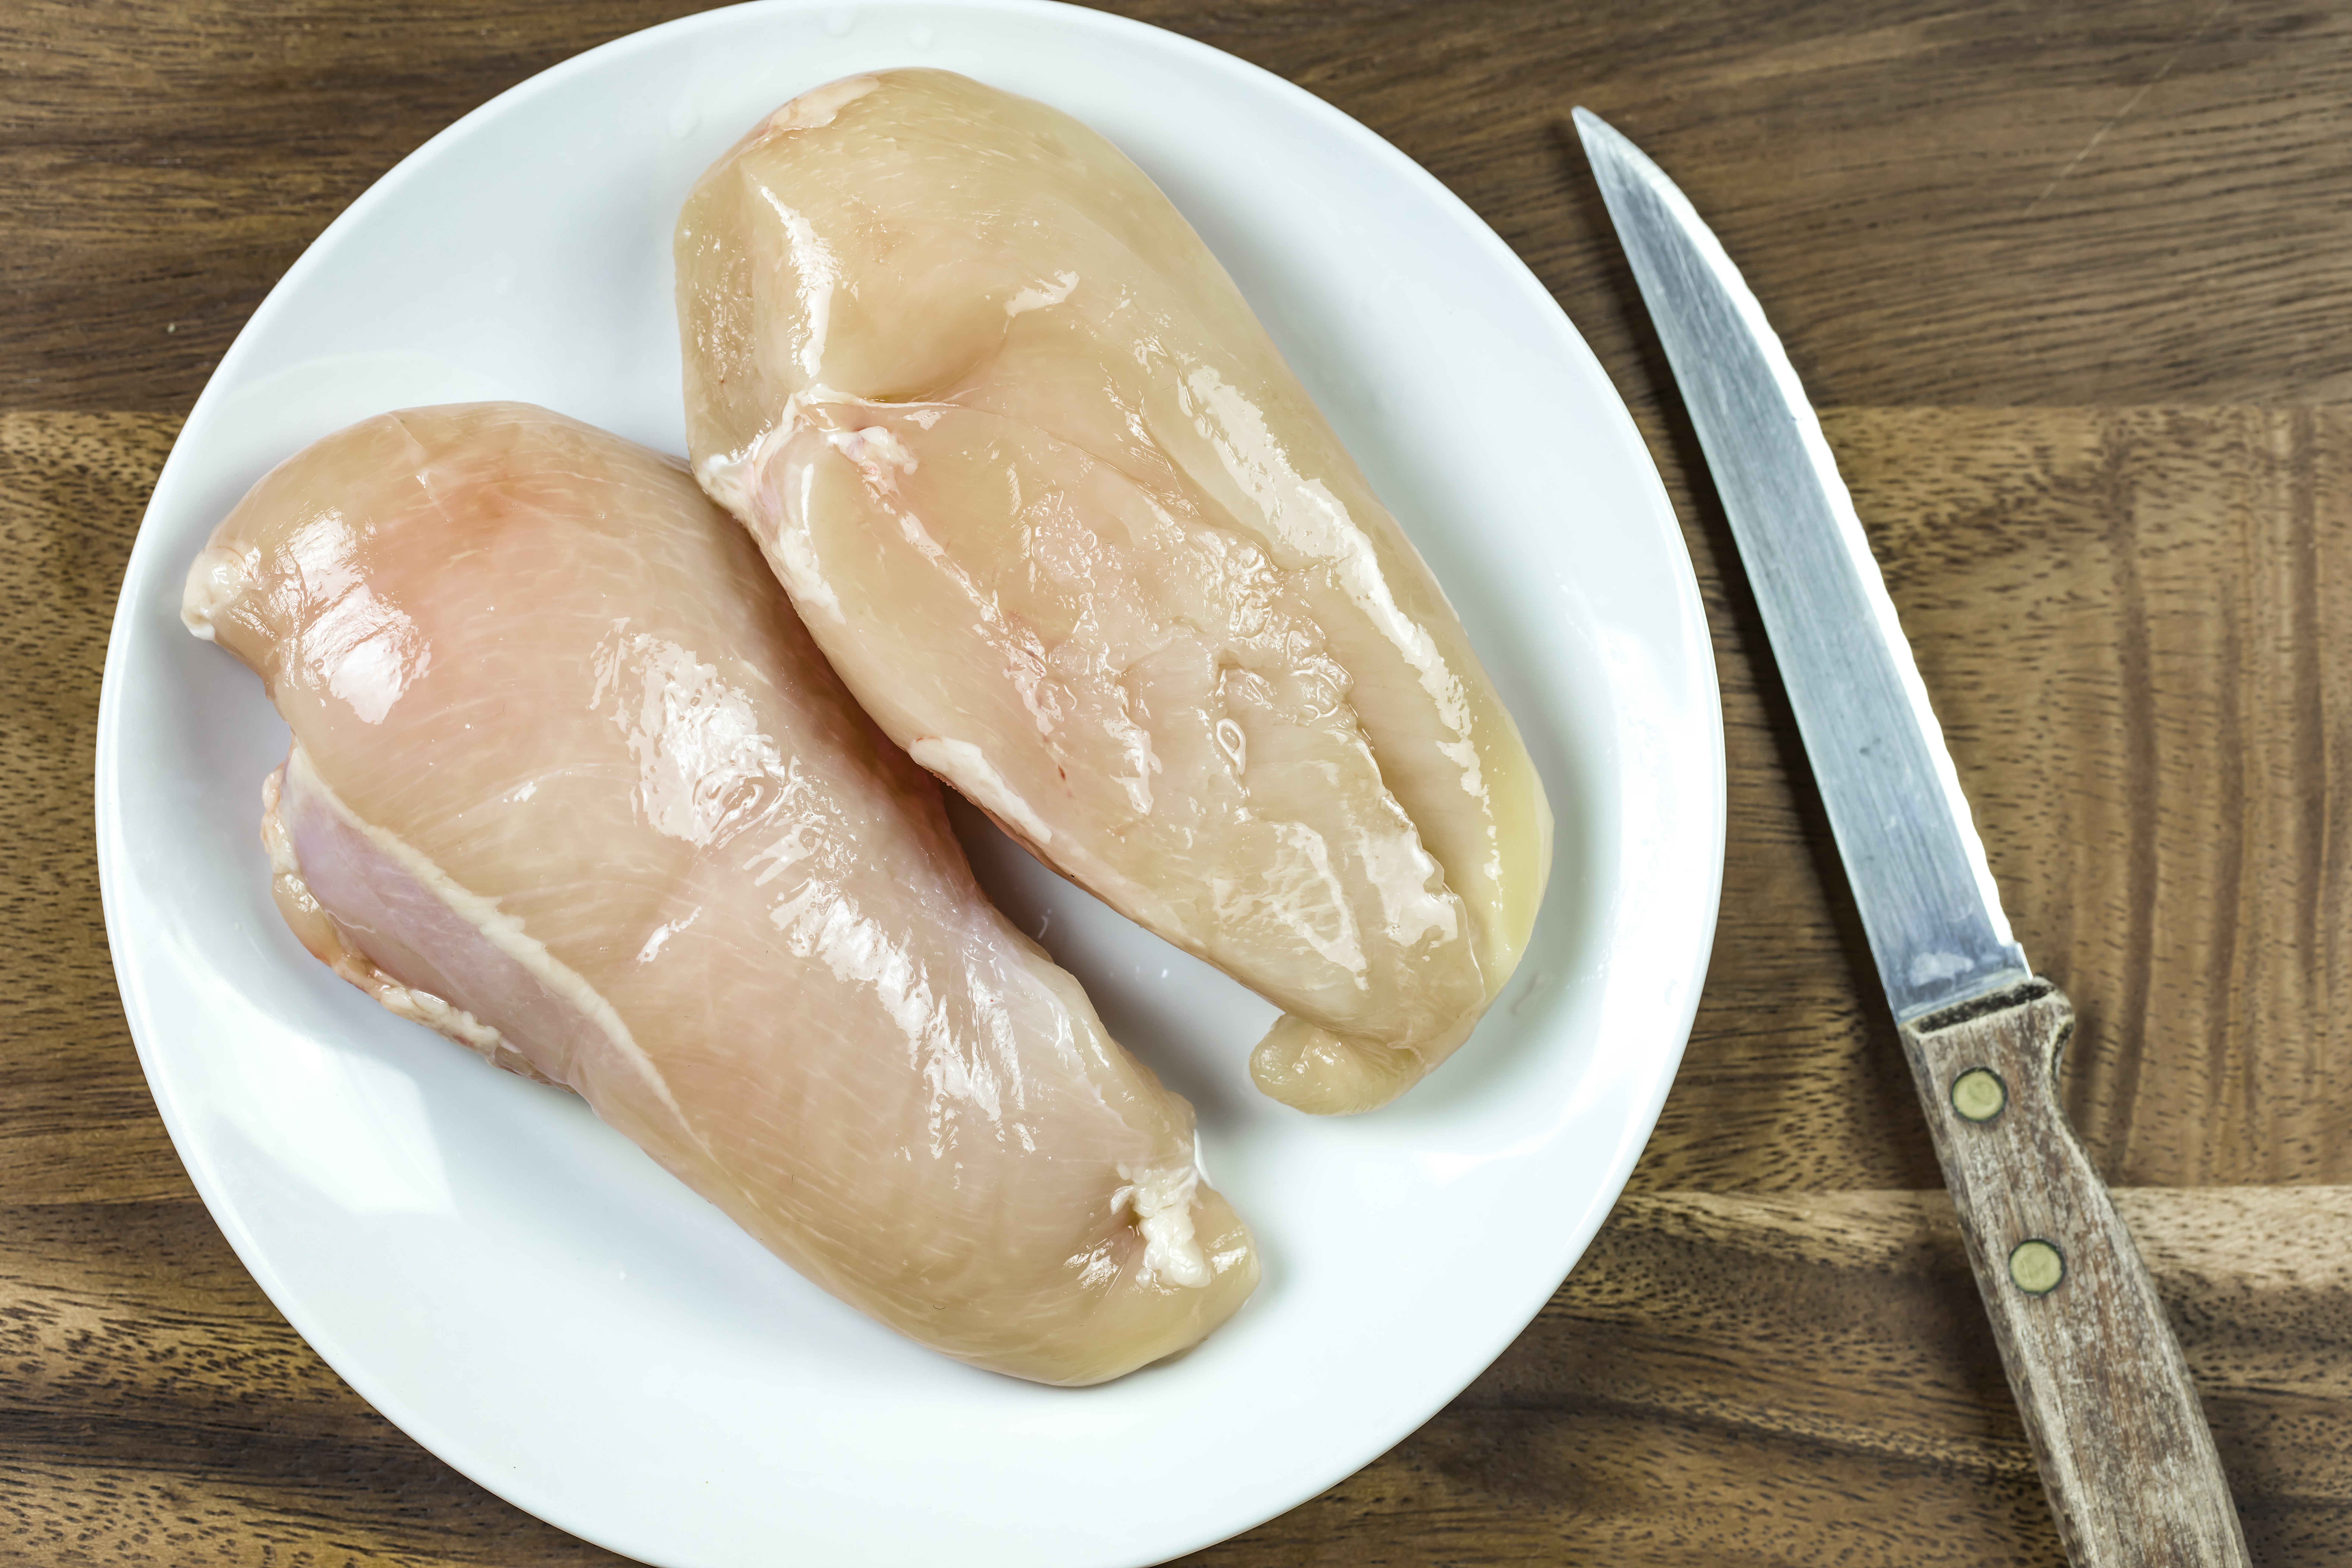 white-stuff-in-raw-chicken